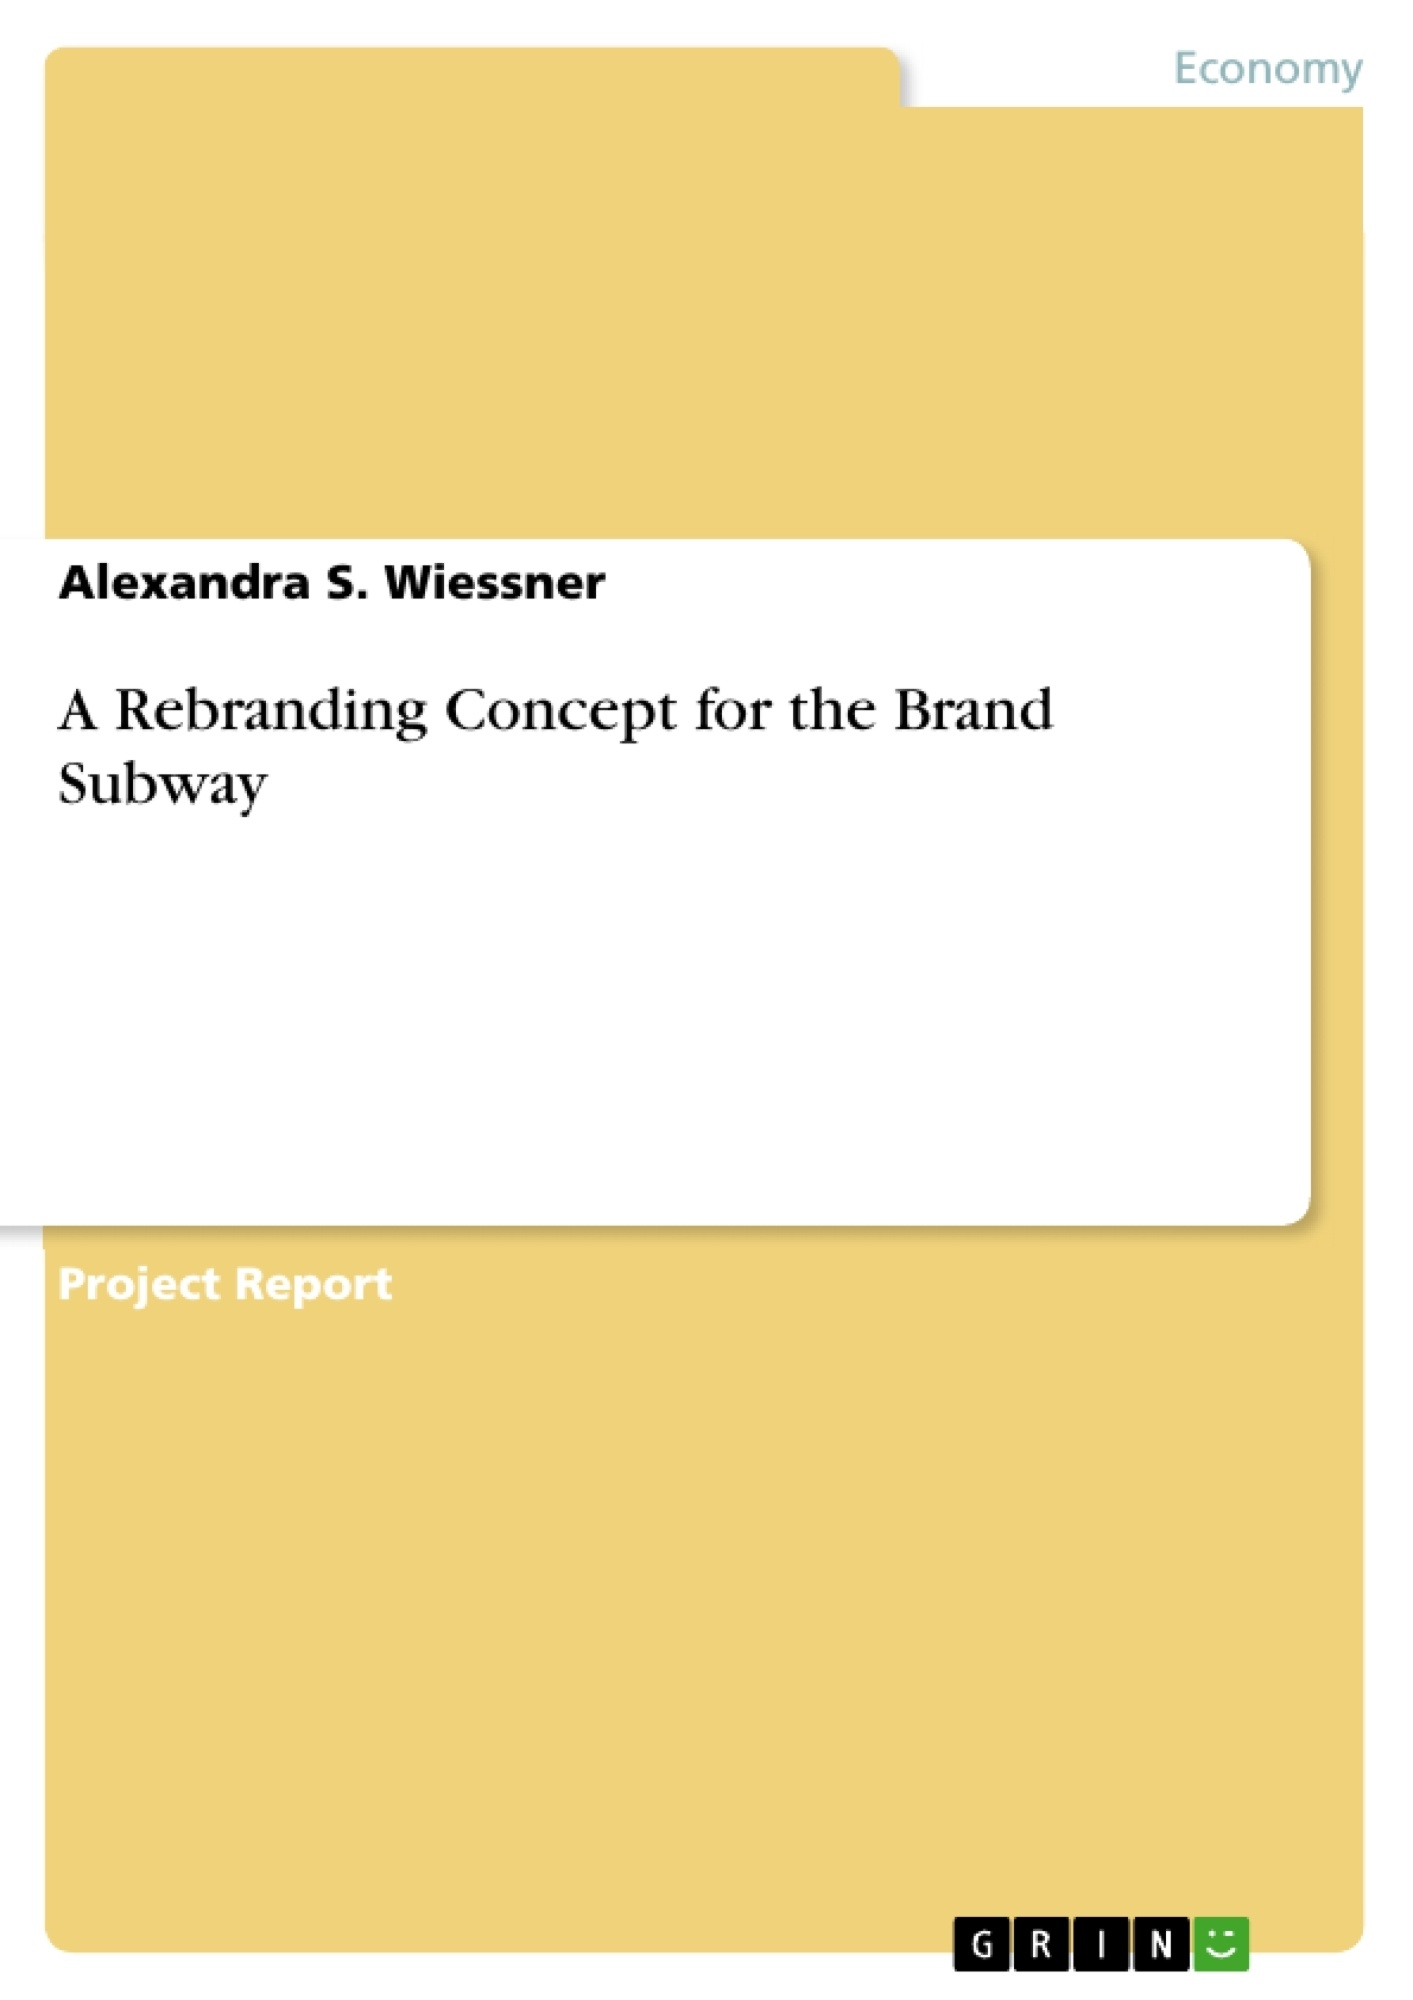 Title: A Rebranding Concept for the Brand Subway